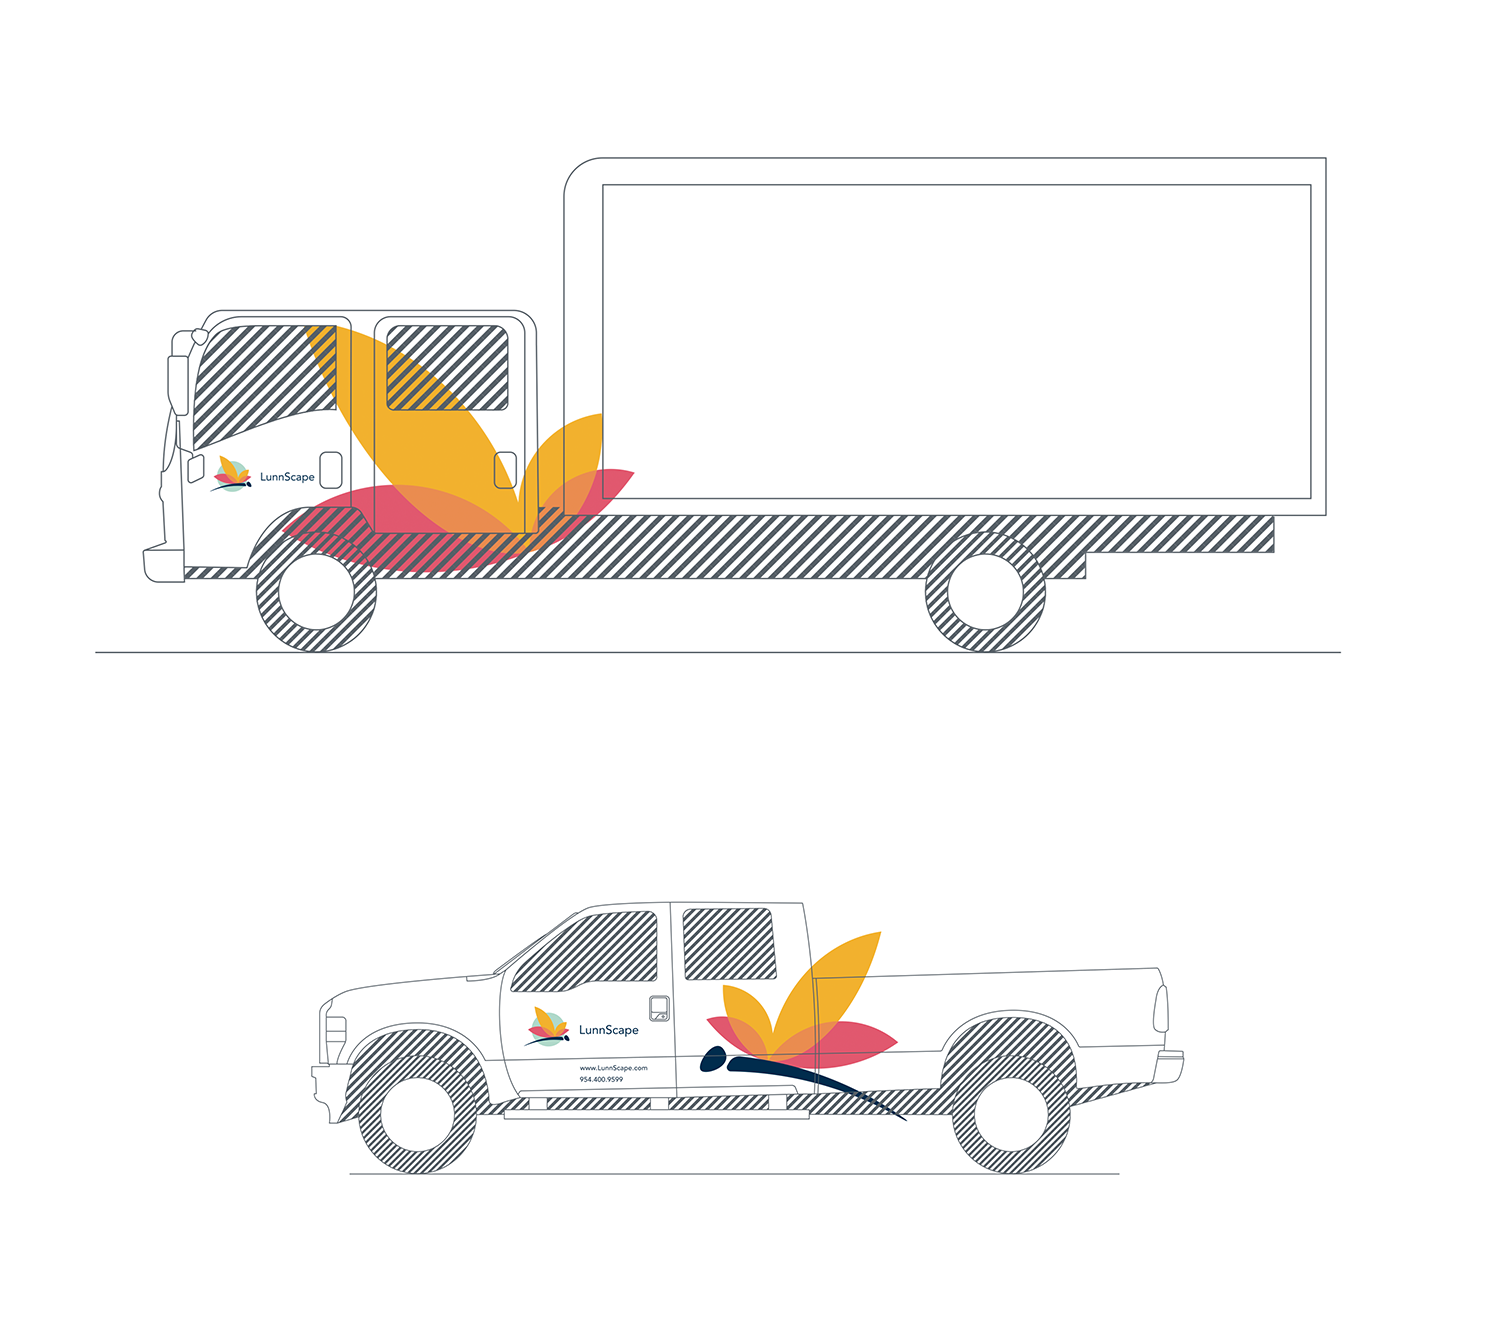 lunnscape_vehicle_livery_truck-1500x1321